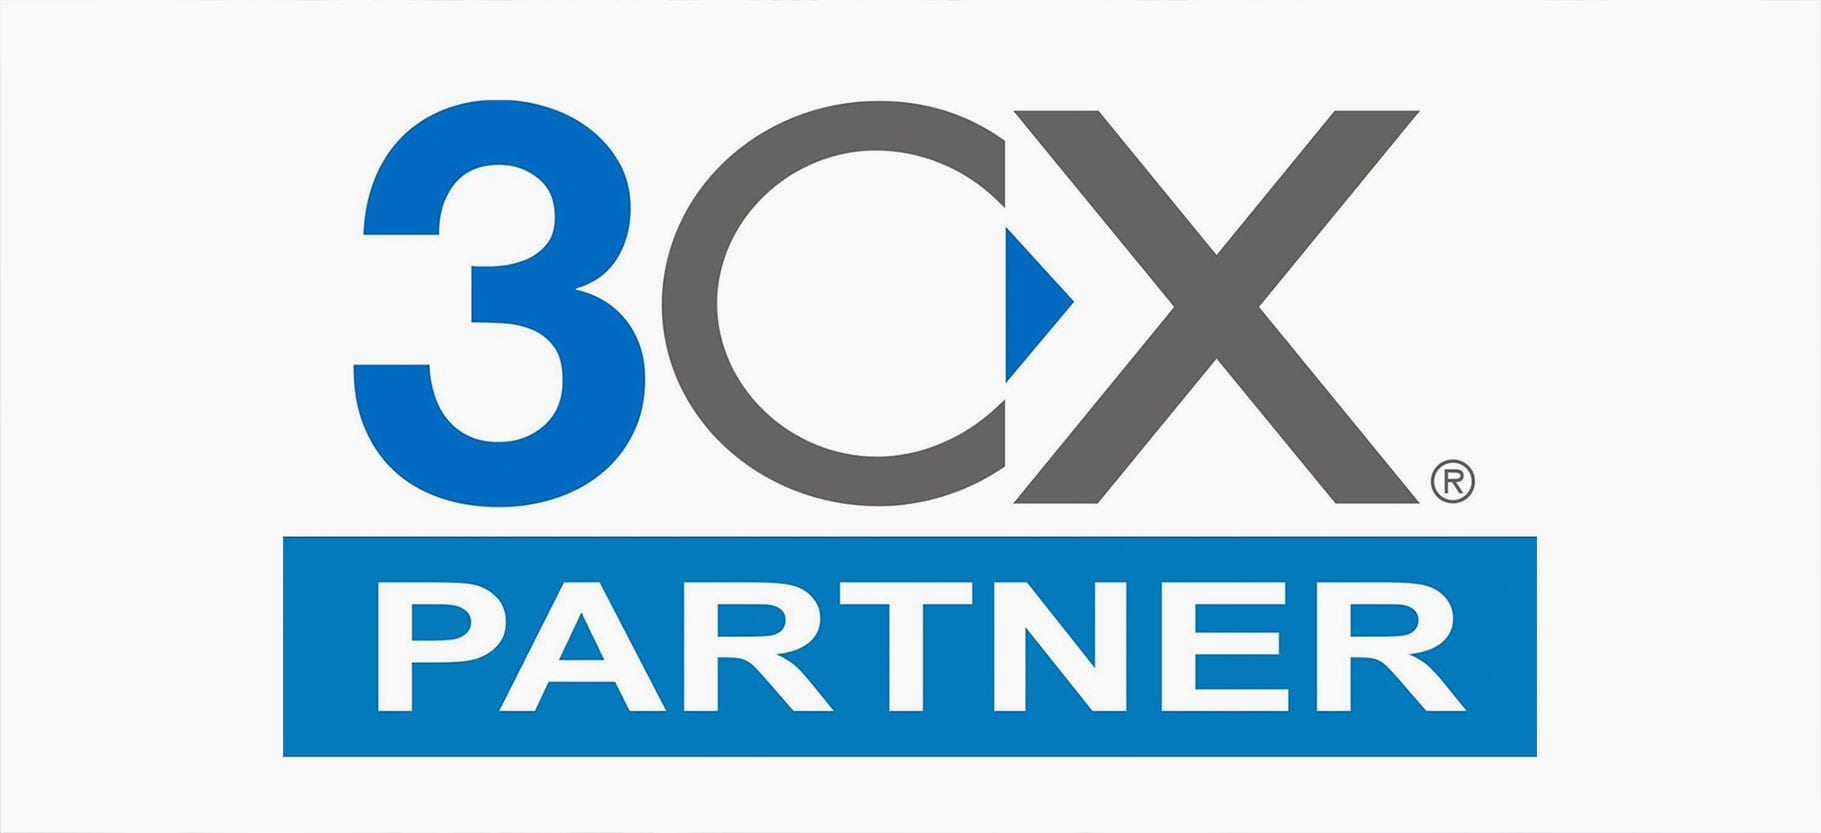 Blueface partner with 3CX